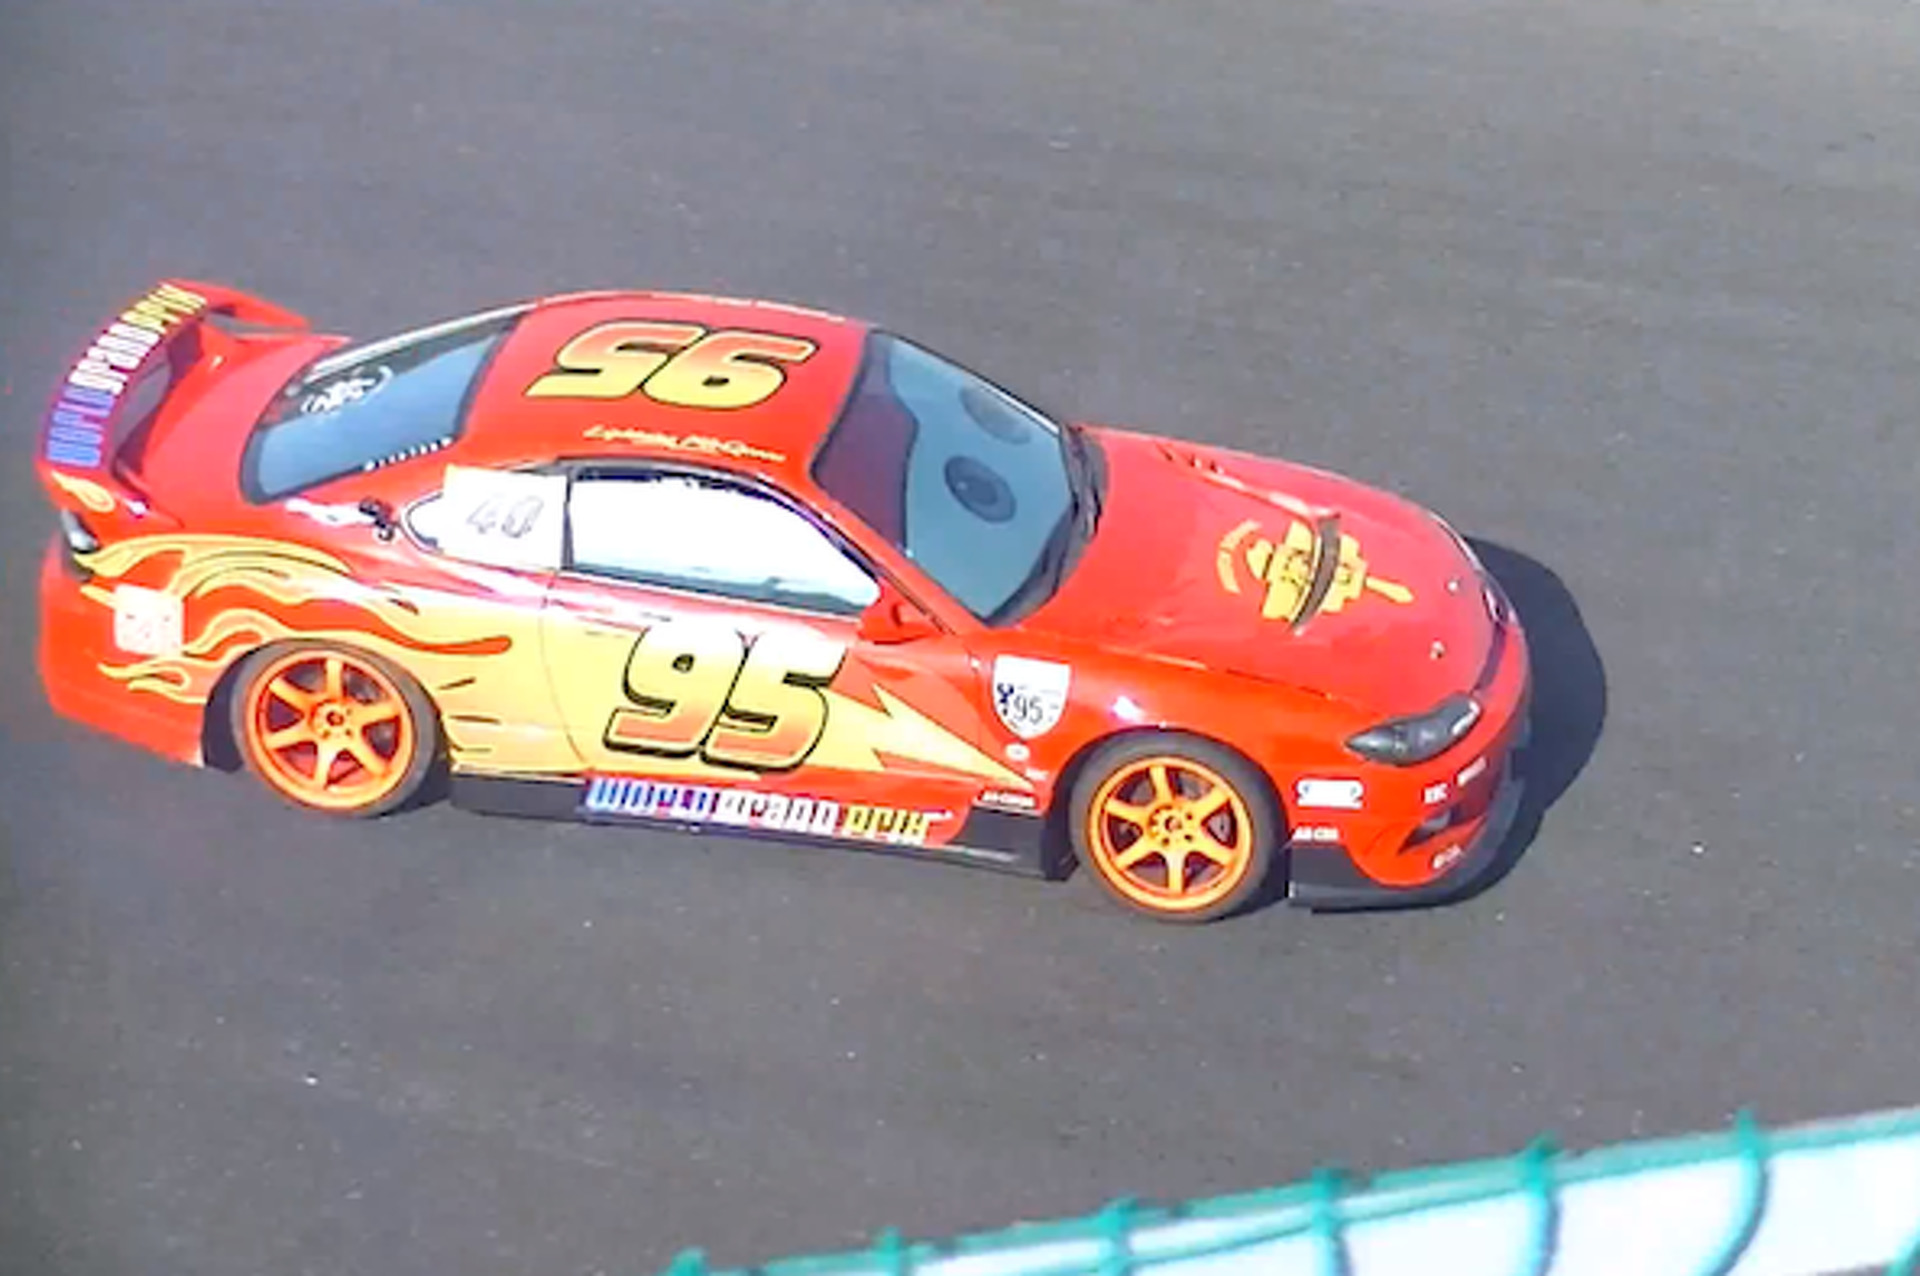 Watch Lightning McQueen in a Japanese Drift Race & Watch Lightning McQueen in a Japanese Drift Race | Motor1.com Photos